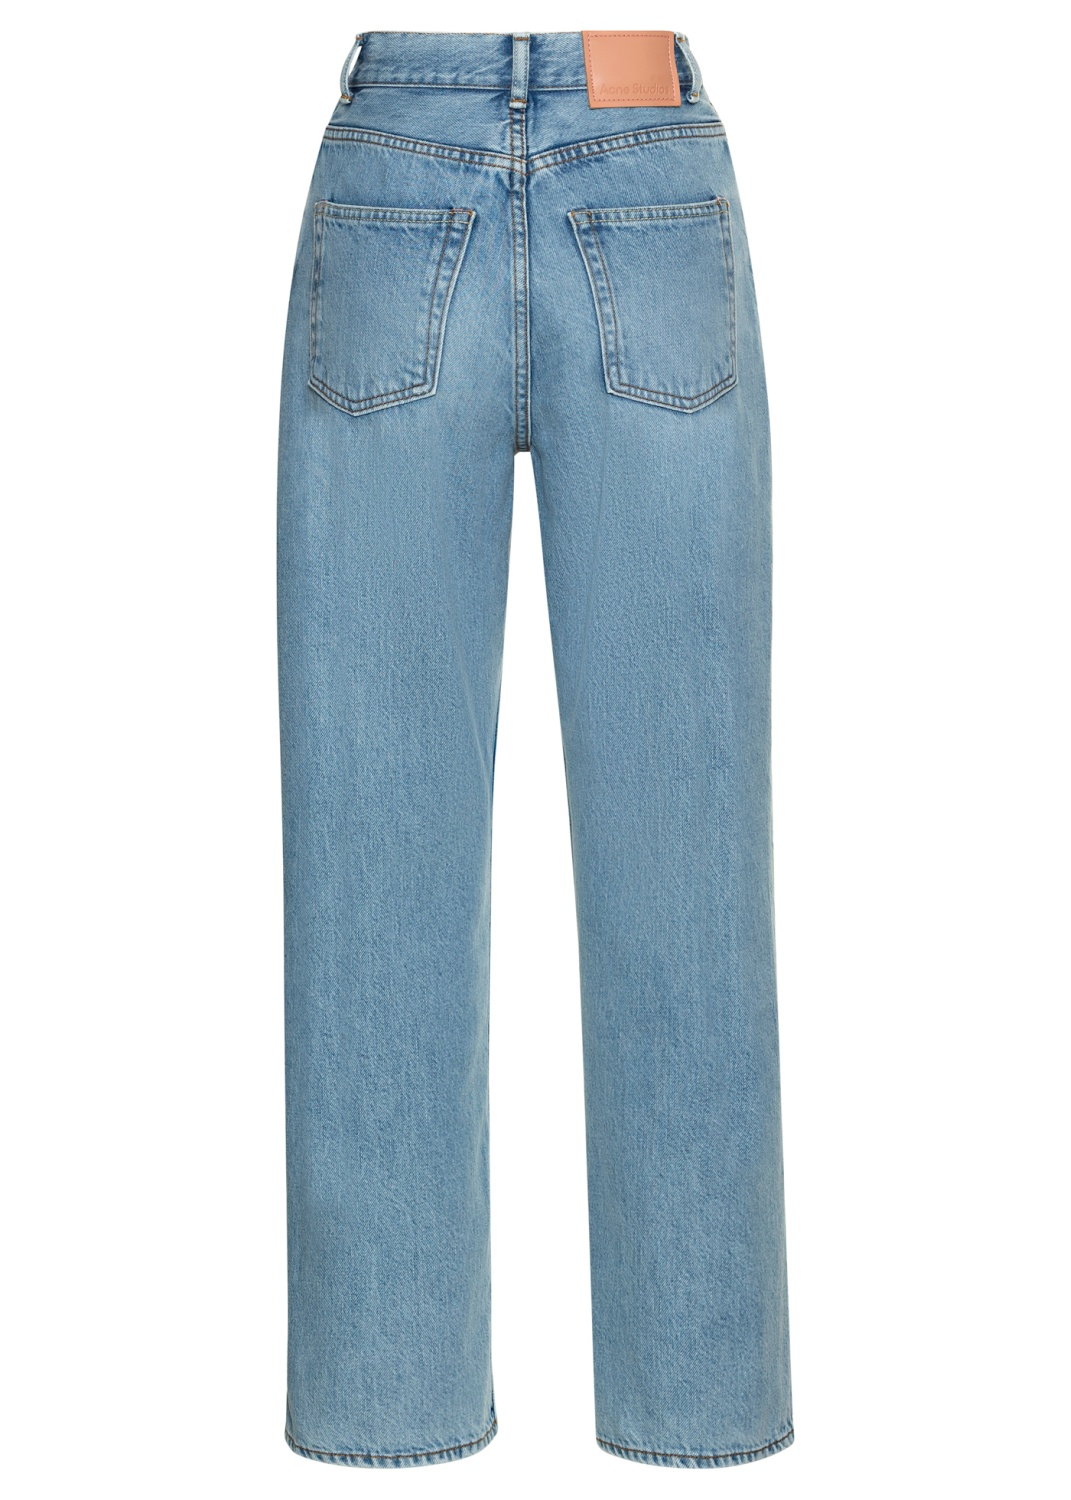 ACNE STUDIOS 1993 SUMMER BLUE image number 1